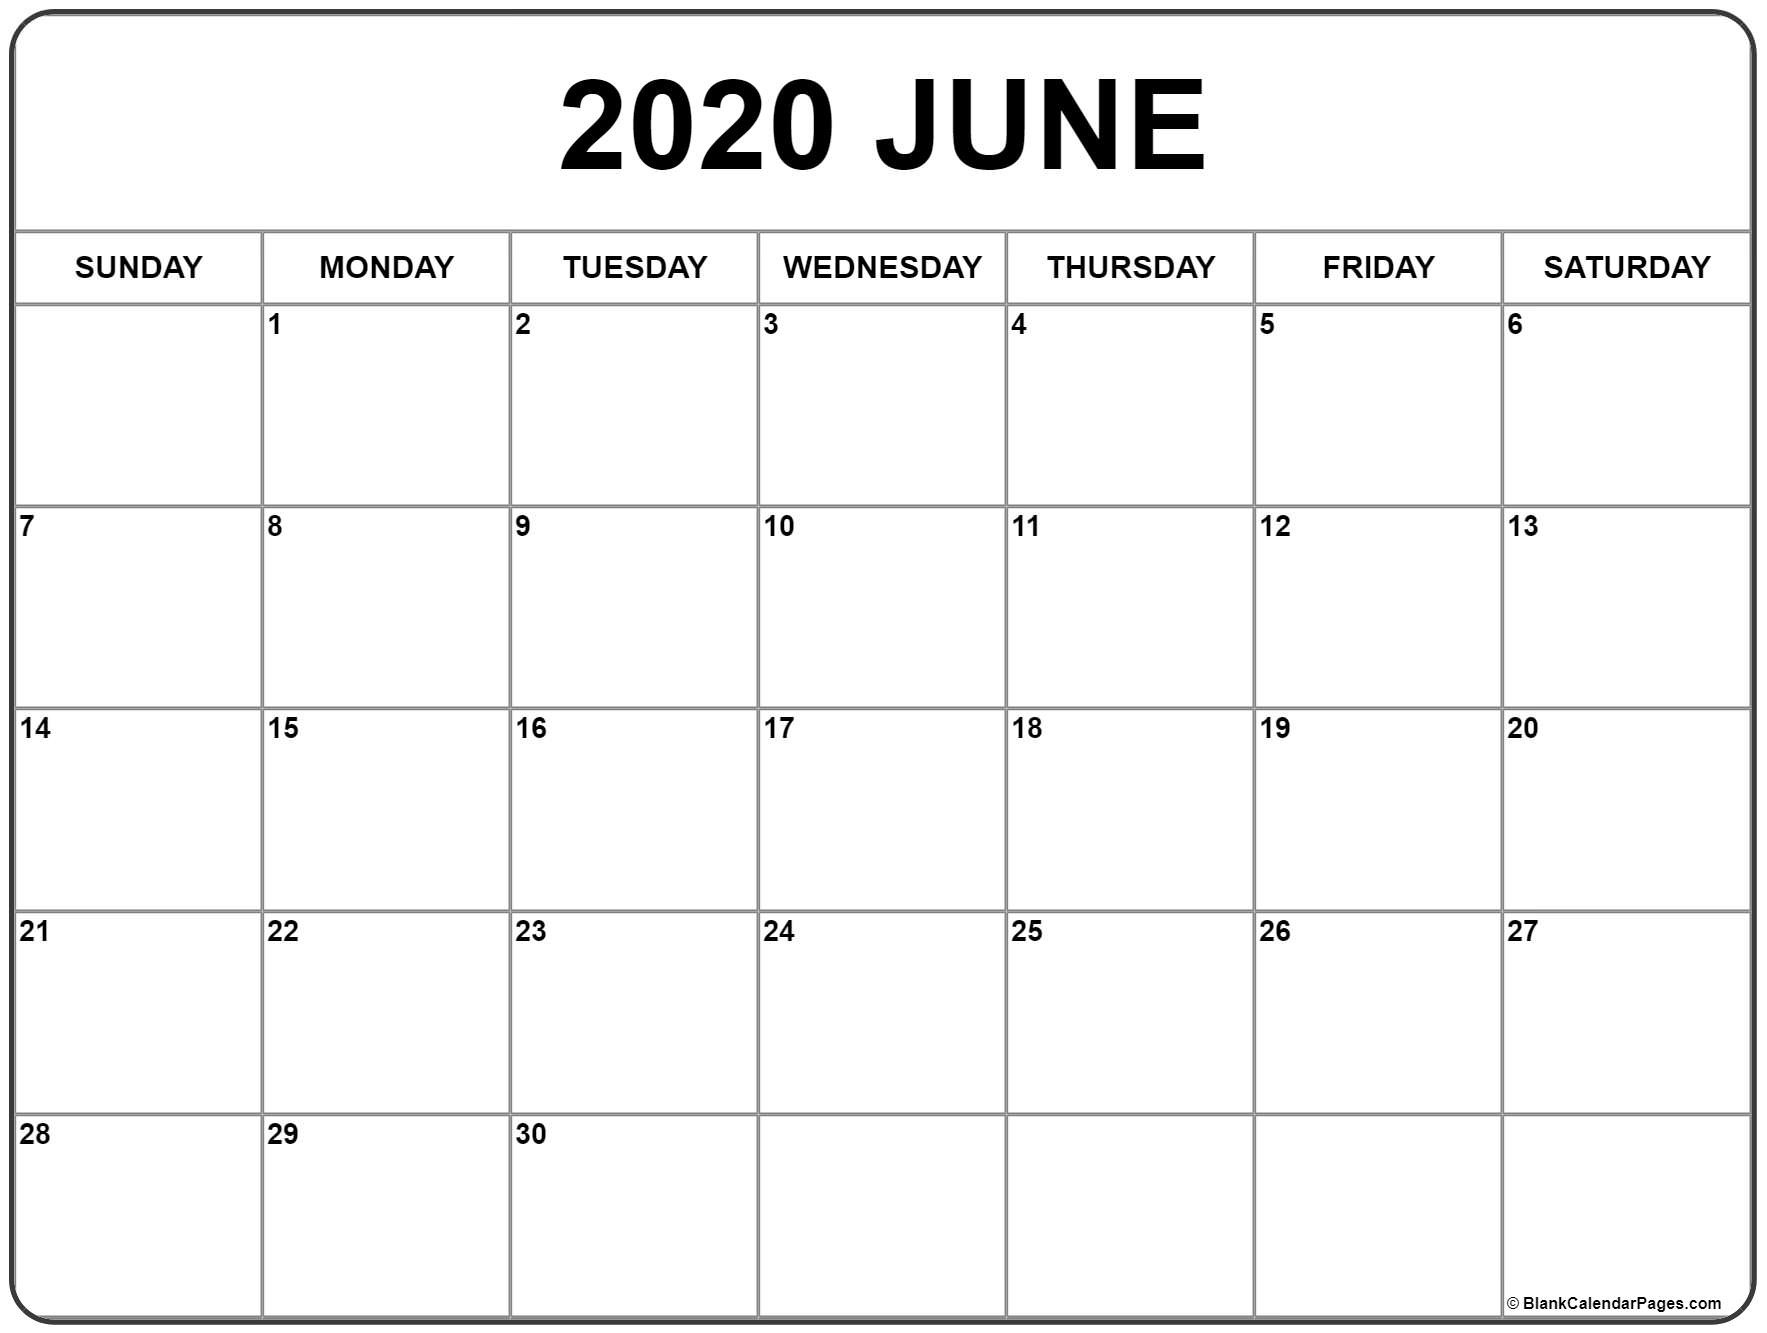 June 2020 Calendar | Free Printable Monthly Calendars-Blank Calendar 2020 June July August